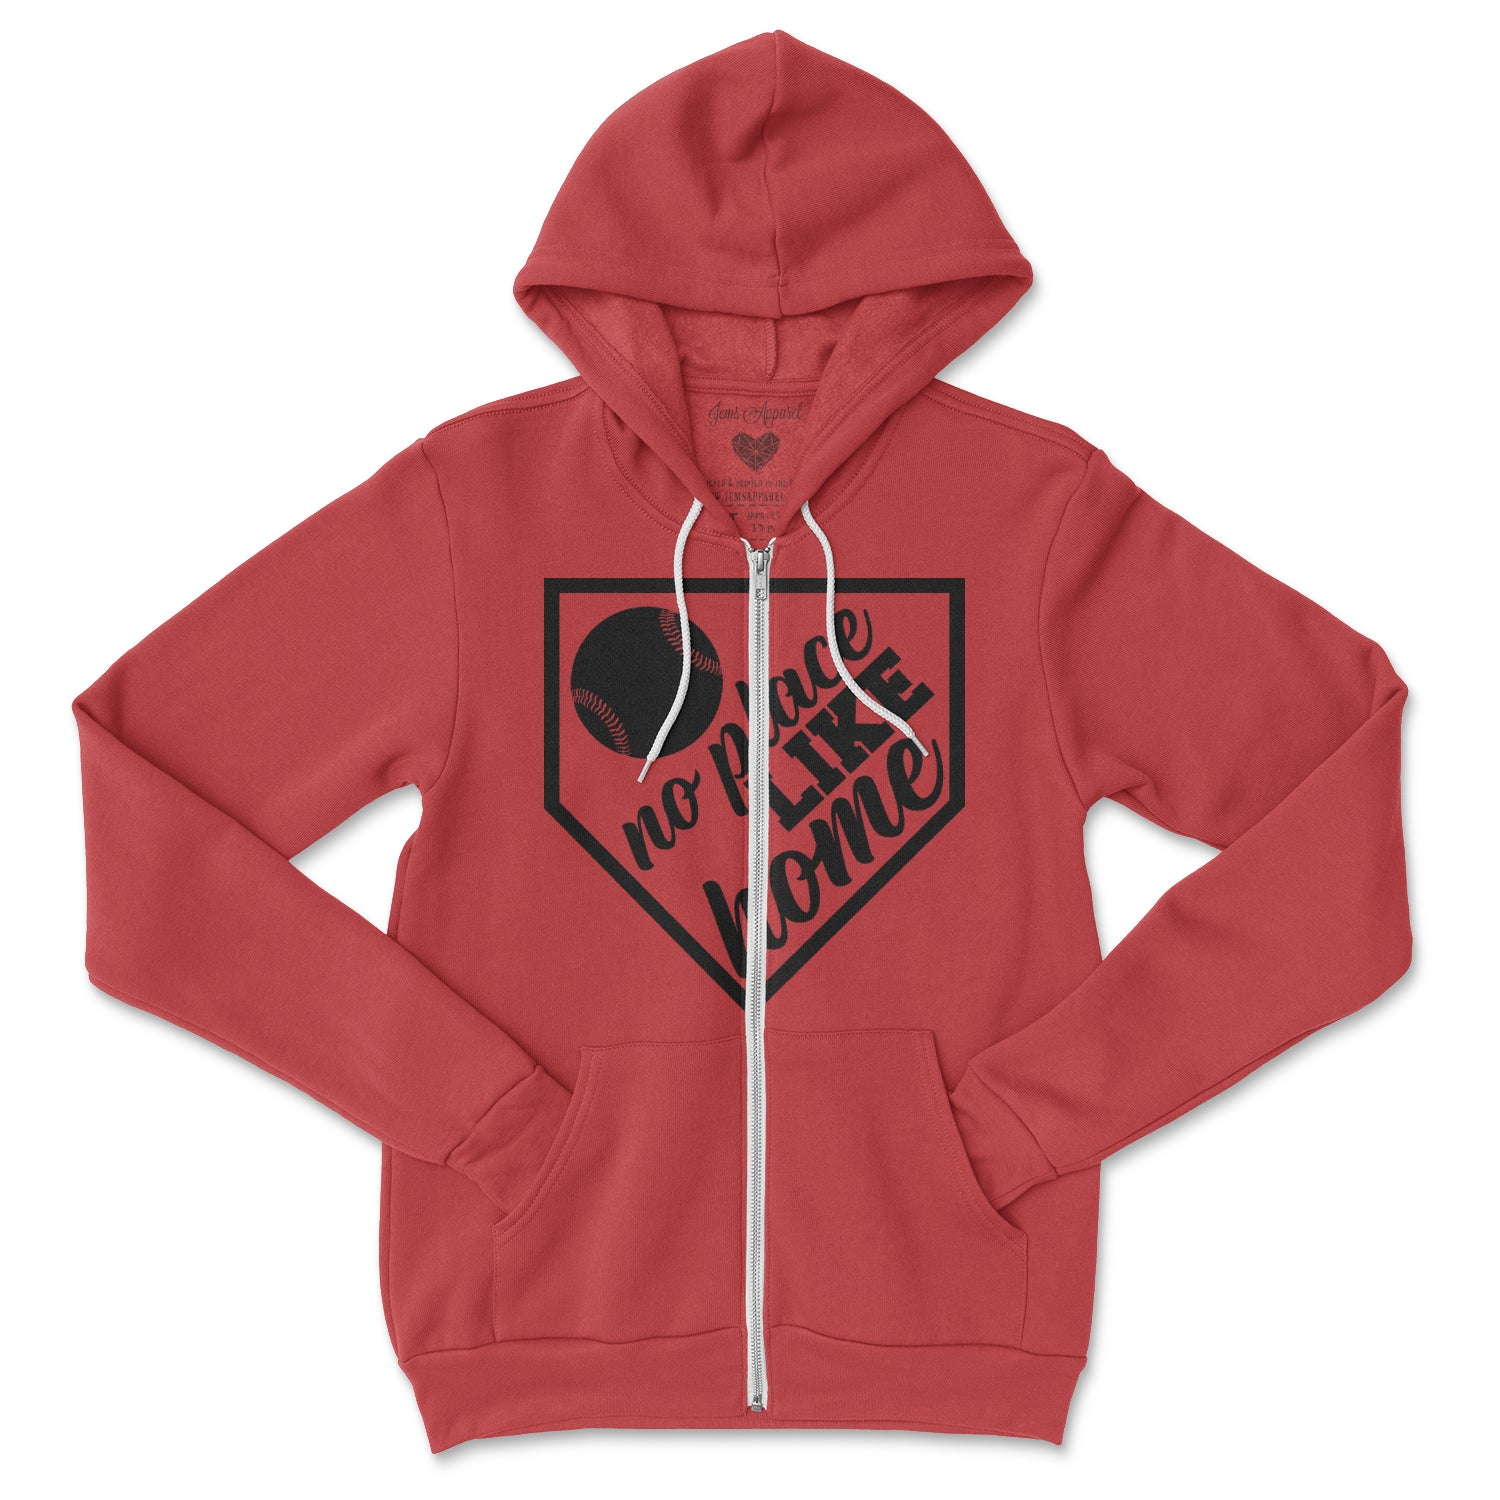 No Place Like Home Zip Hoodie